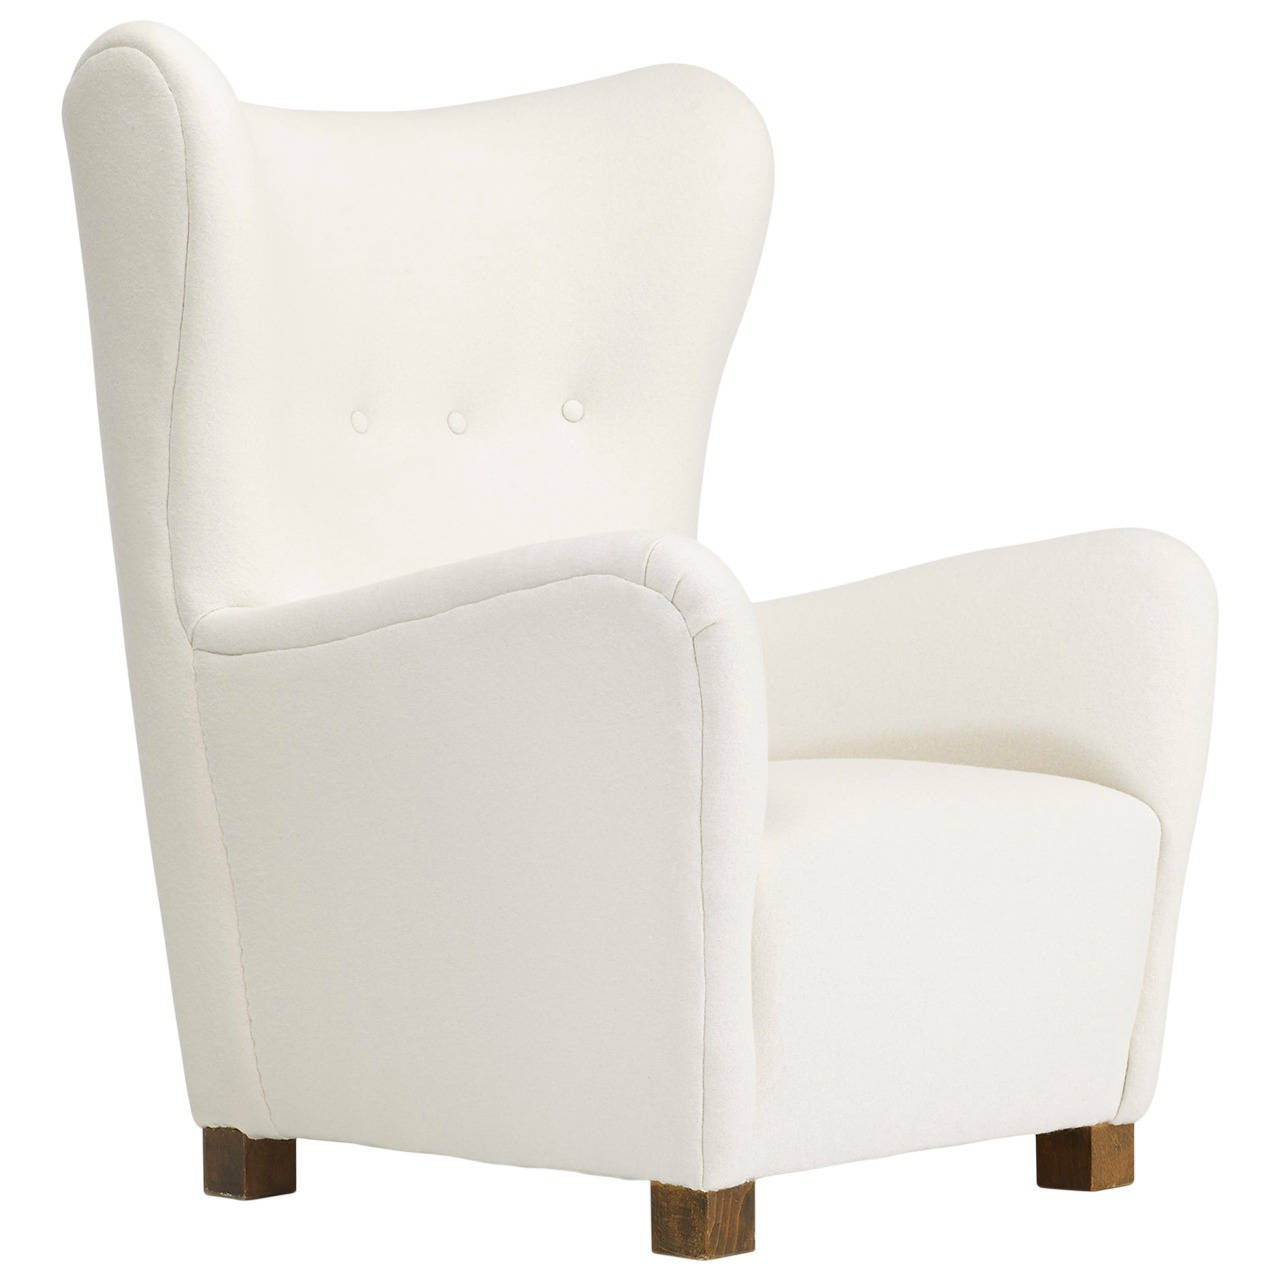 wingback armchair model 1672 by fritz hansen at 1stdibs. Black Bedroom Furniture Sets. Home Design Ideas